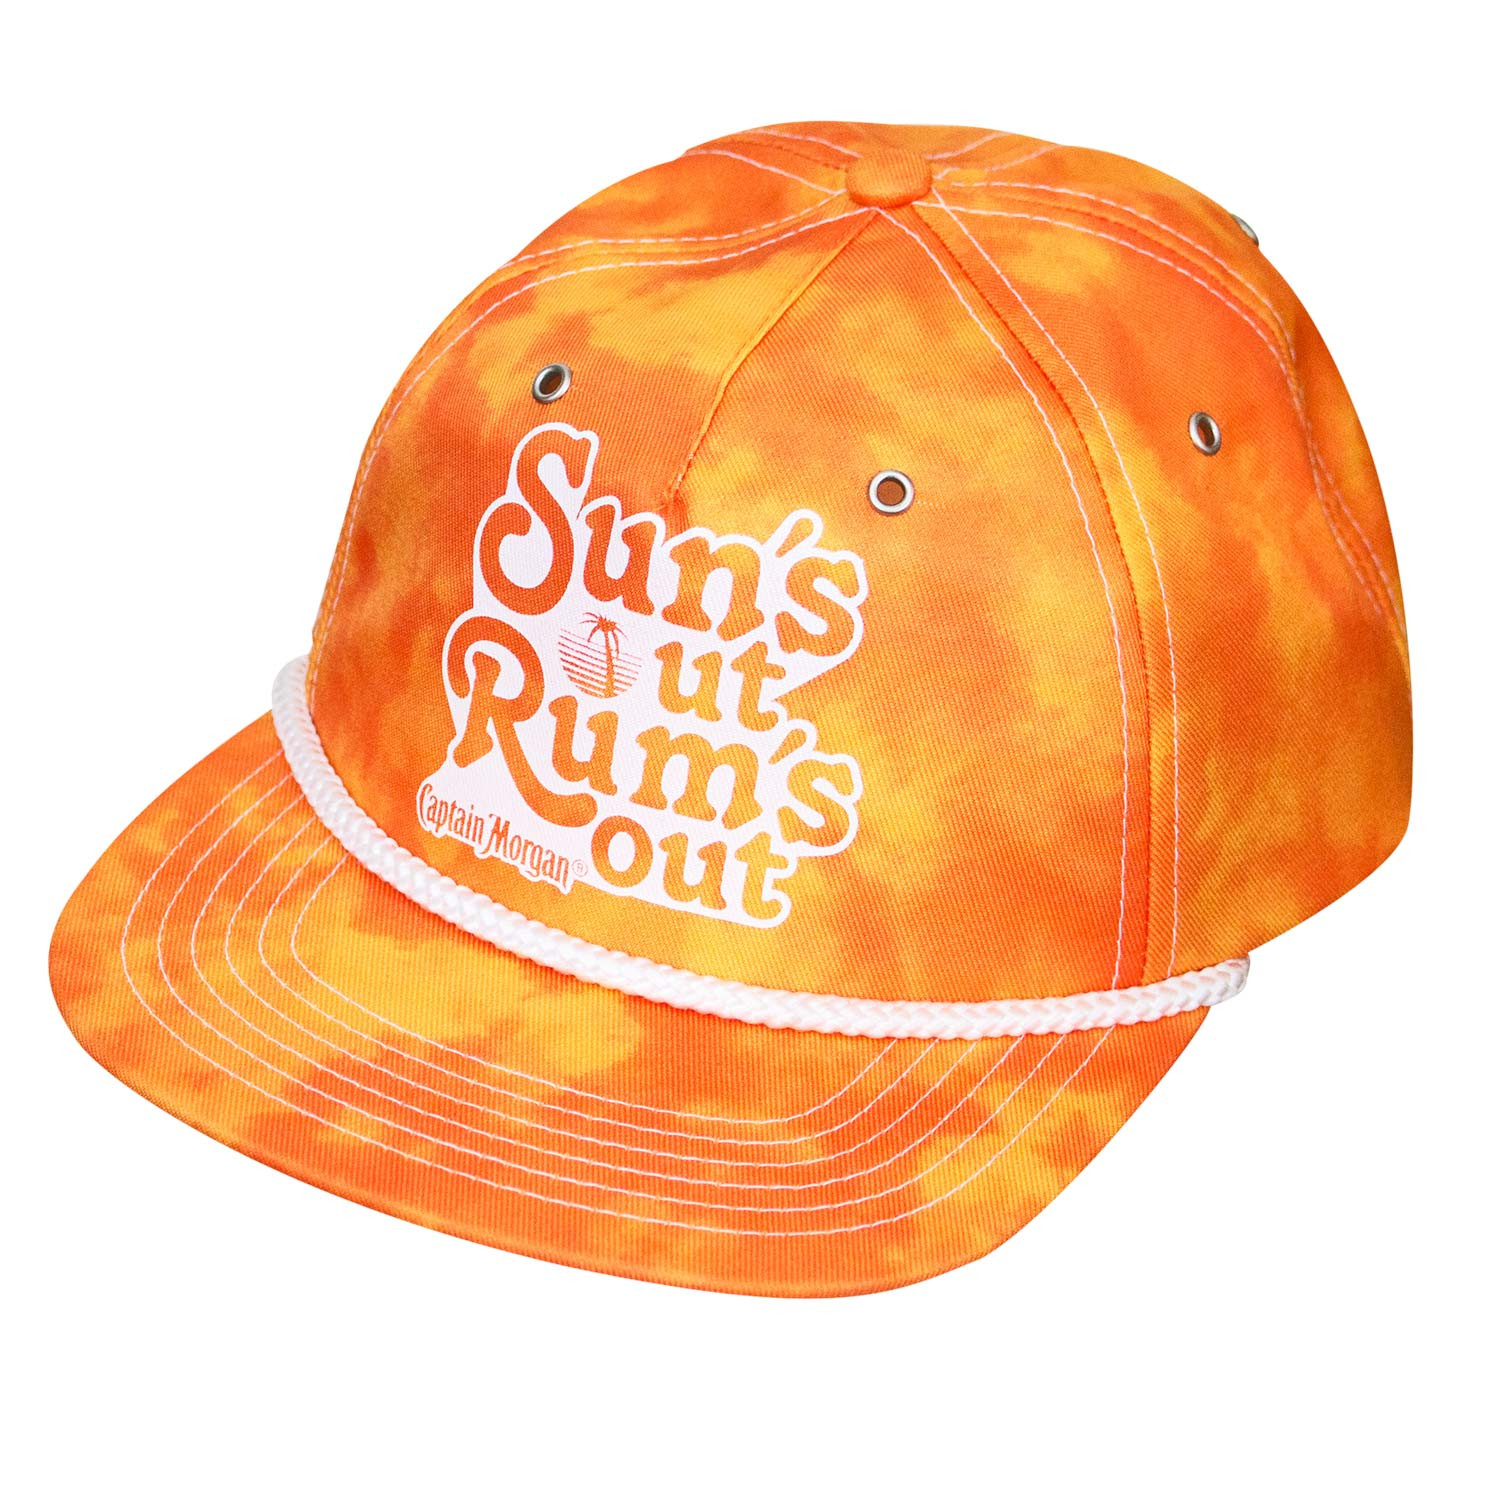 Captain Morgan Suns Out Rums Out Hat